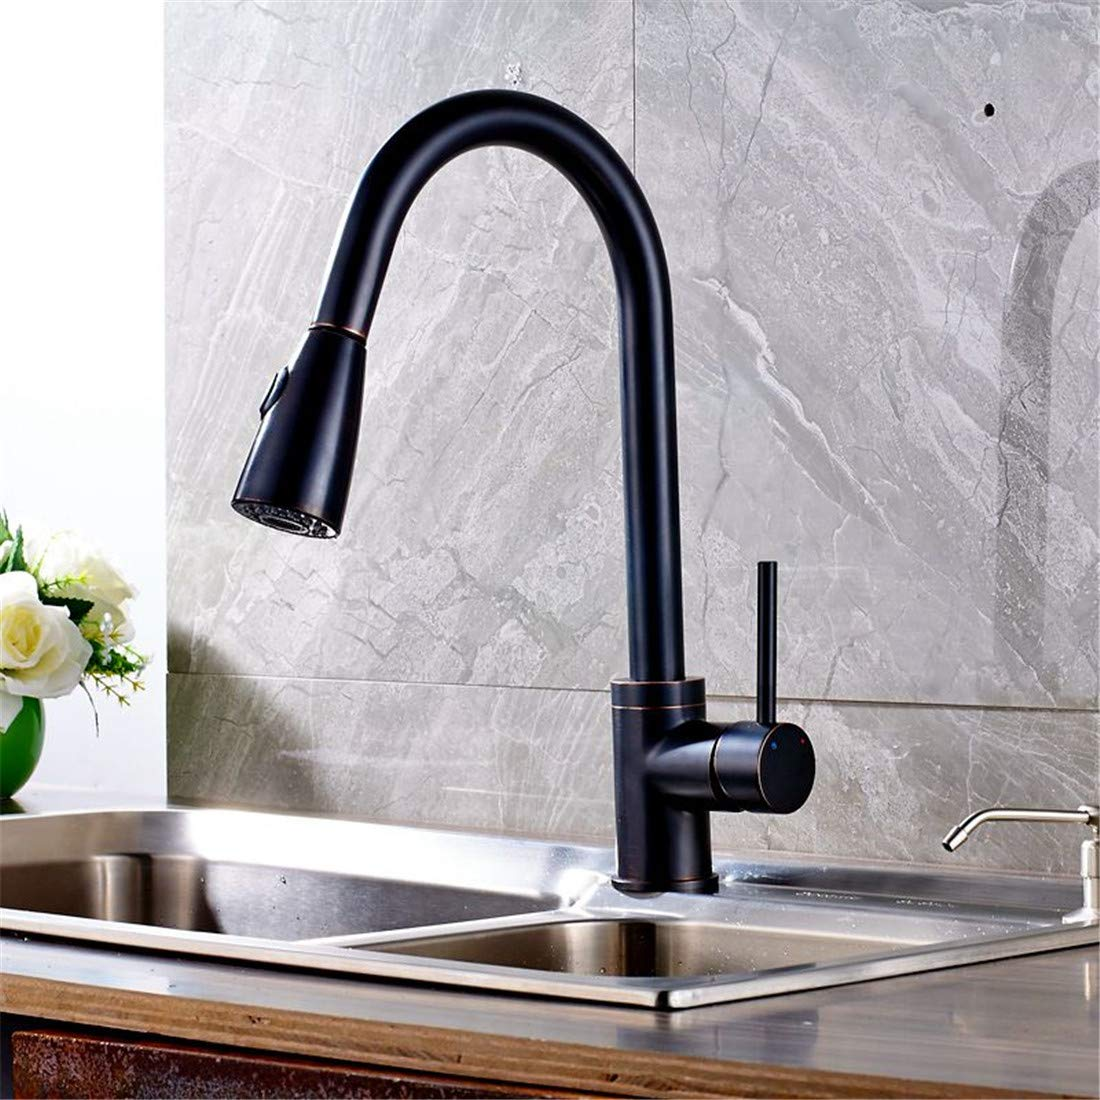 Retro Hot and Cold Faucet Retro Luxury Pull Out Oil Rubbed Bronze Finish Kitchen Faucet Mixer Tap